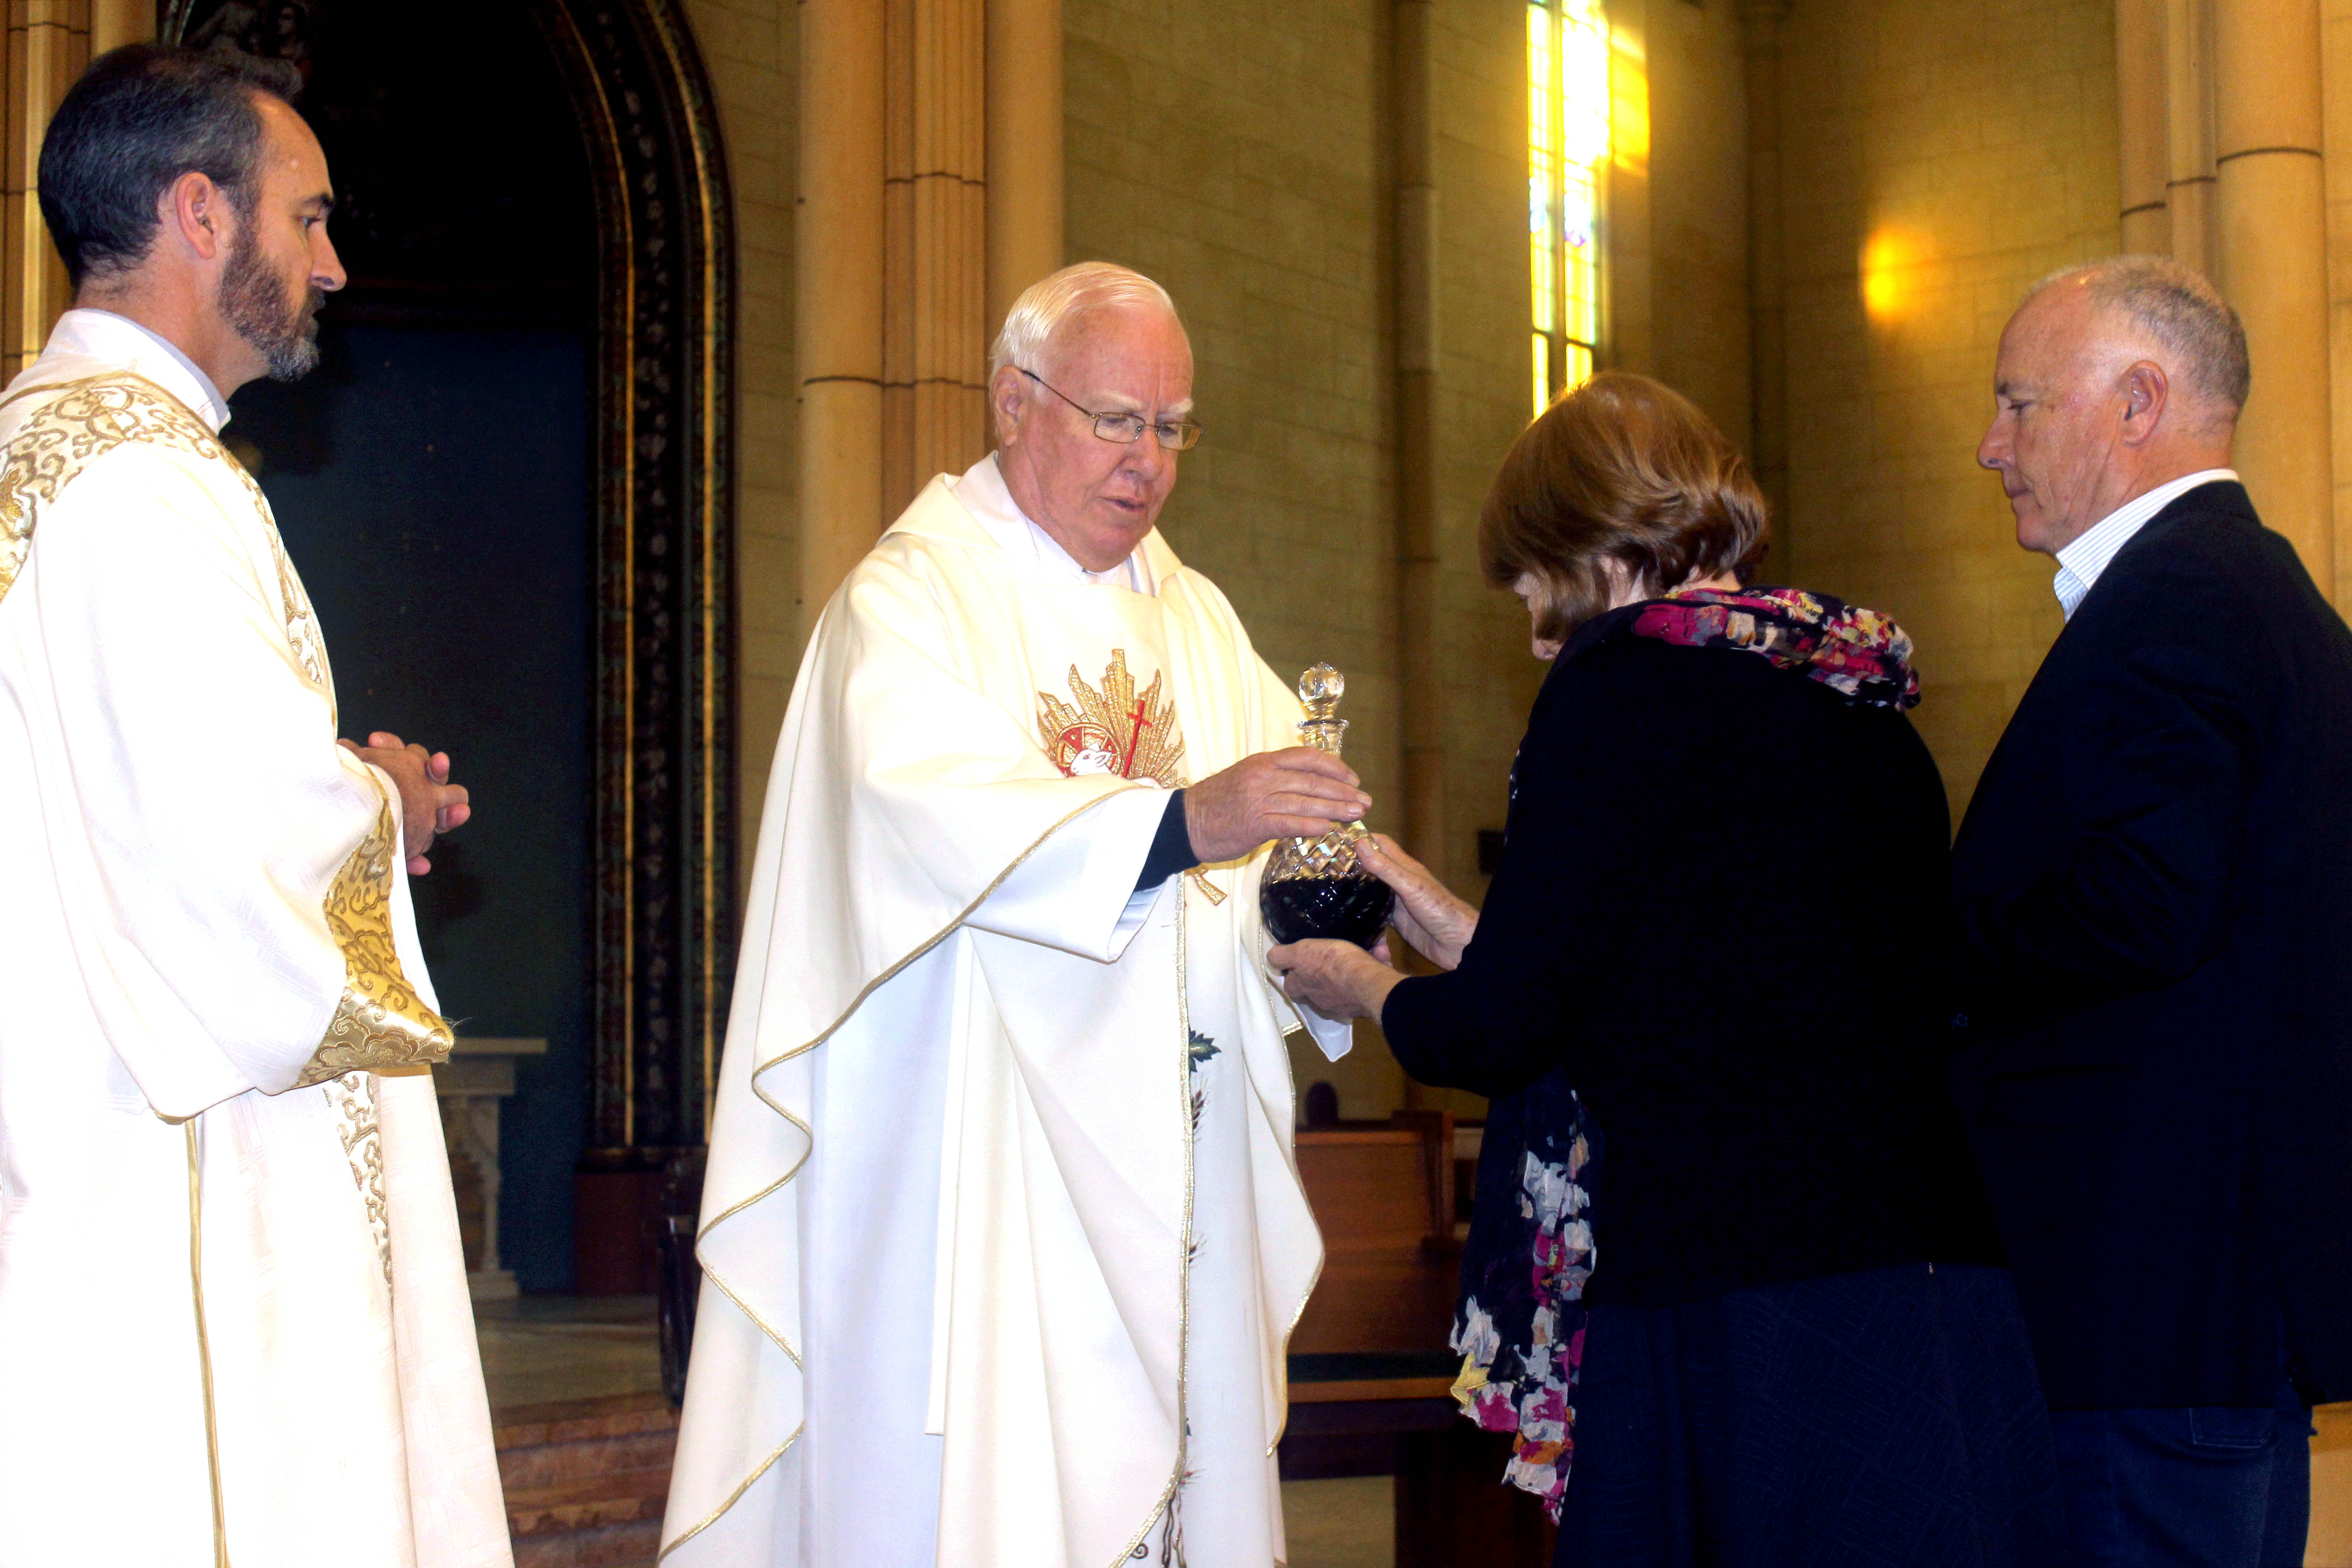 Fr Vincent Conroy with his sister Clare Evans and brother Peter Conroy bringing up the offertory gifts at his 50th anniversary Mass. Photo: Supplied.